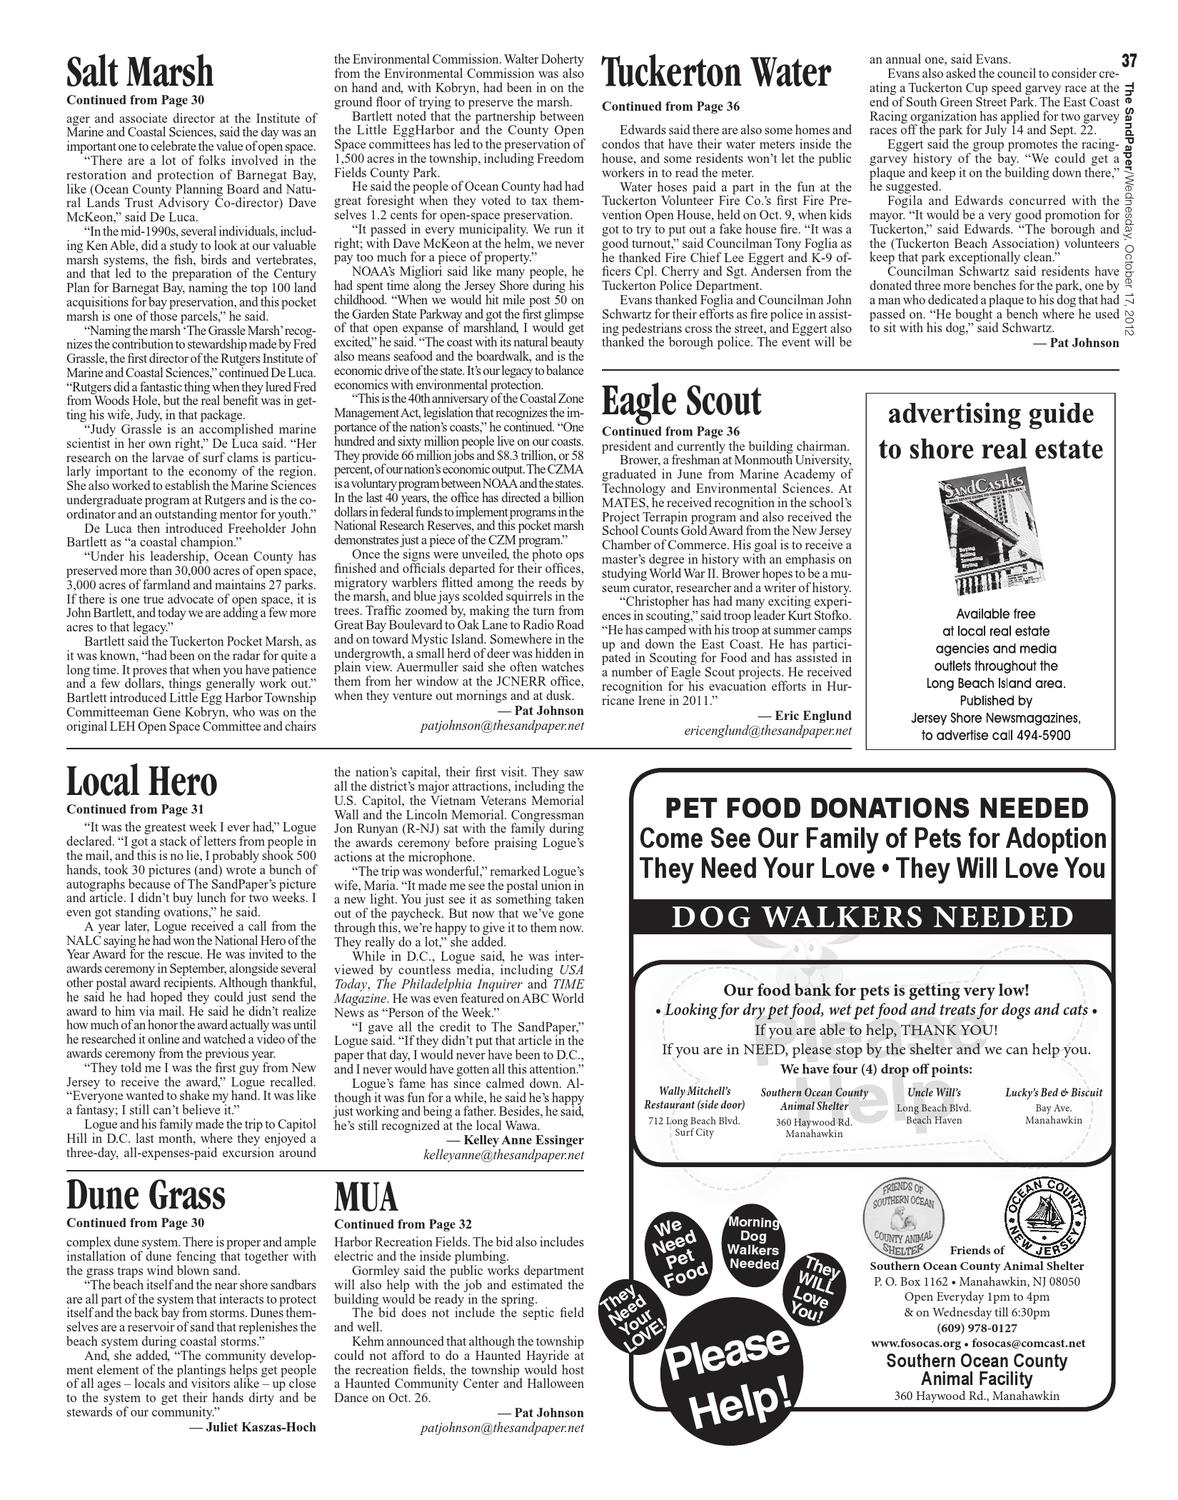 The SandPaper, October 17, 2012, Vol  38 No  41 by The